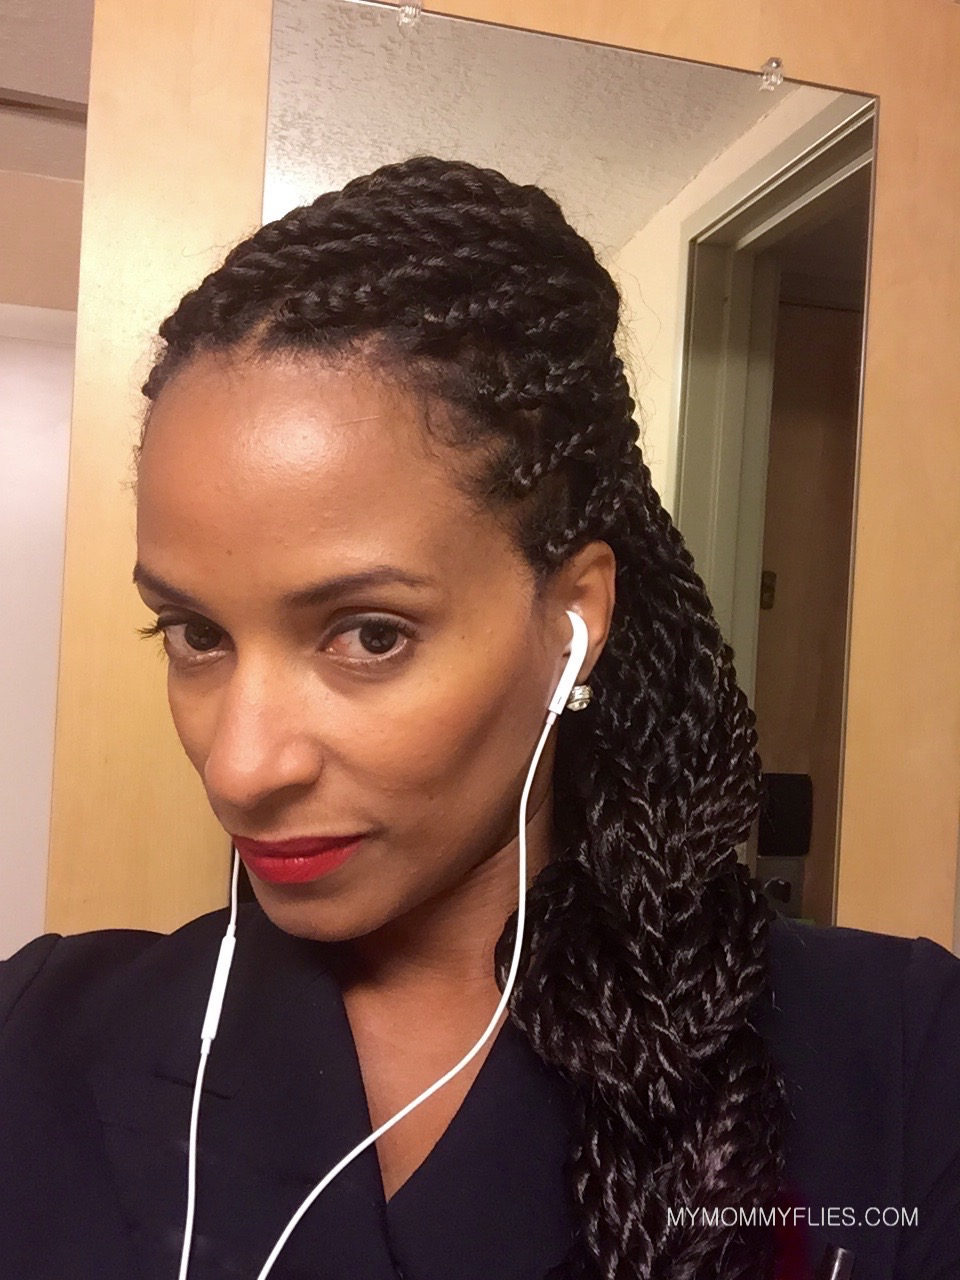 Magnificent 15 Easy Senegalese Twists Hair Styles For Travel My Mommy Flies Short Hairstyles Gunalazisus